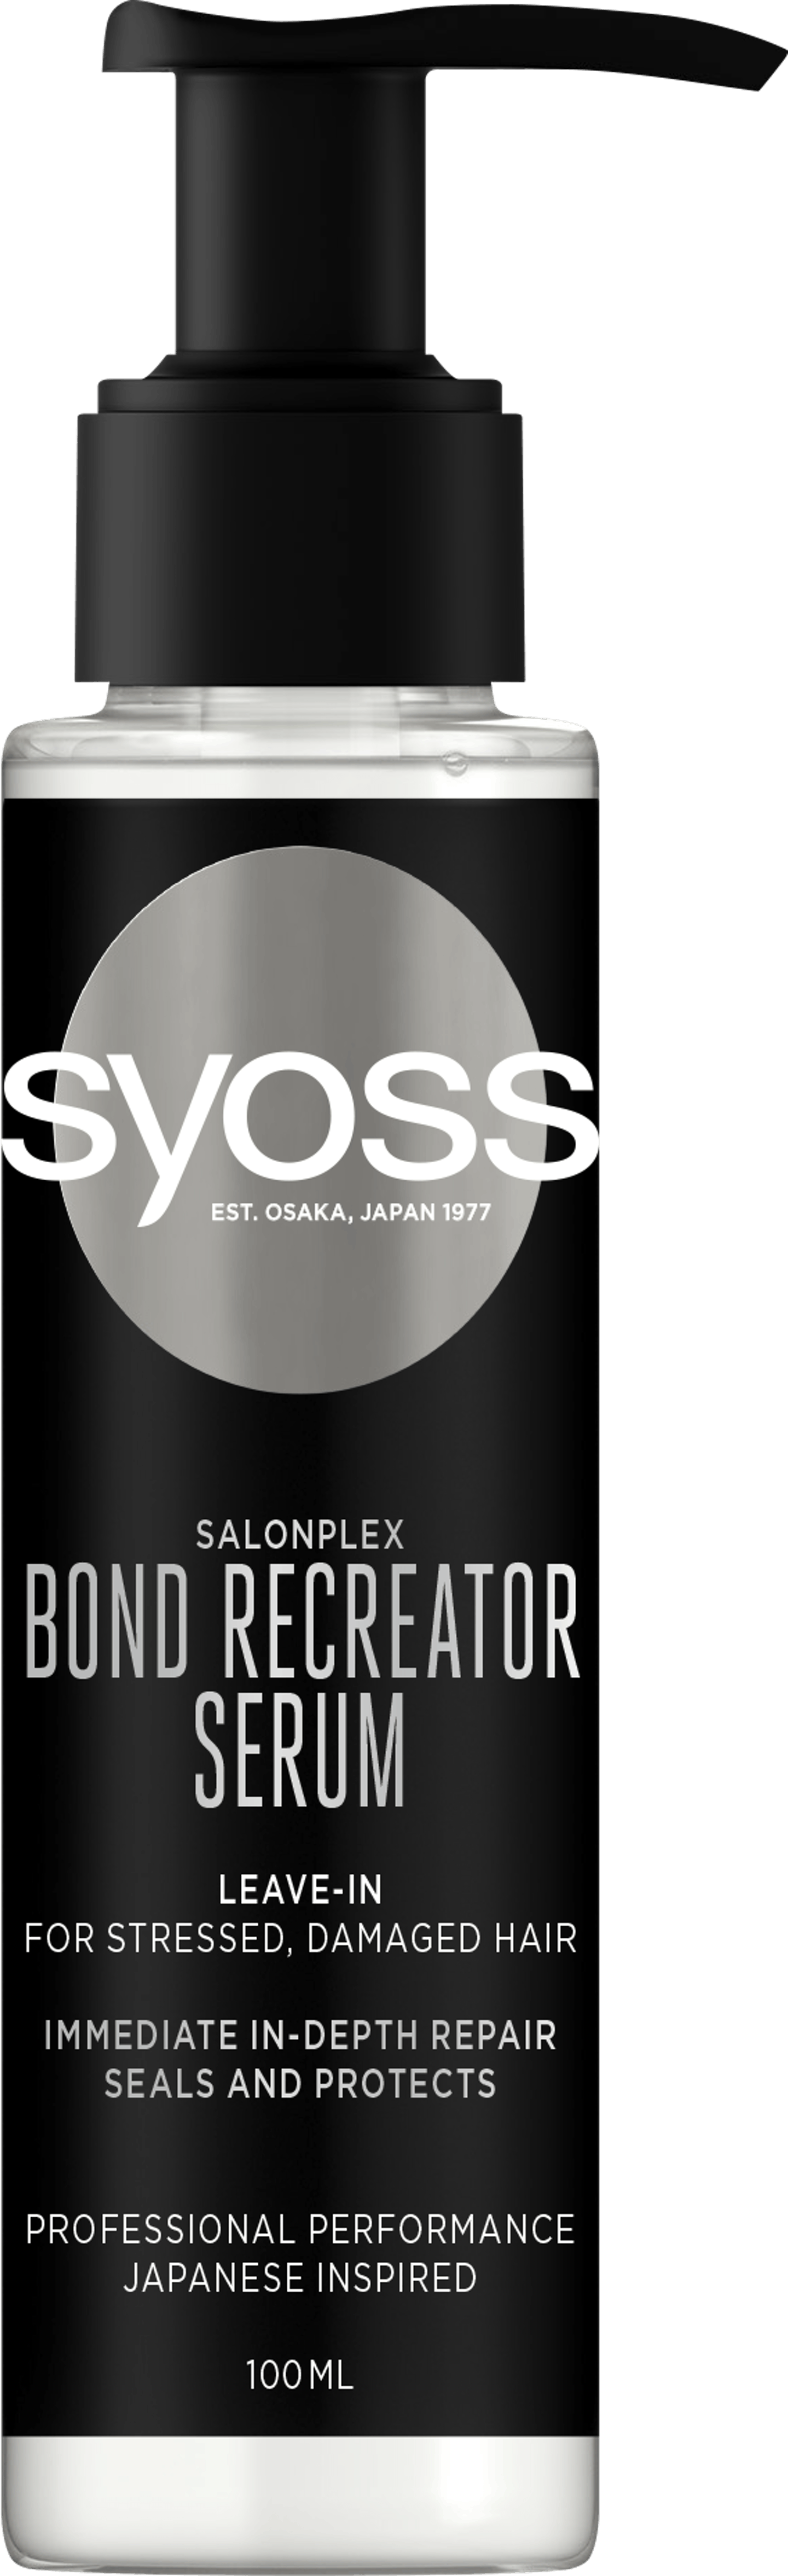 Salonplex Bond Recreator Serum